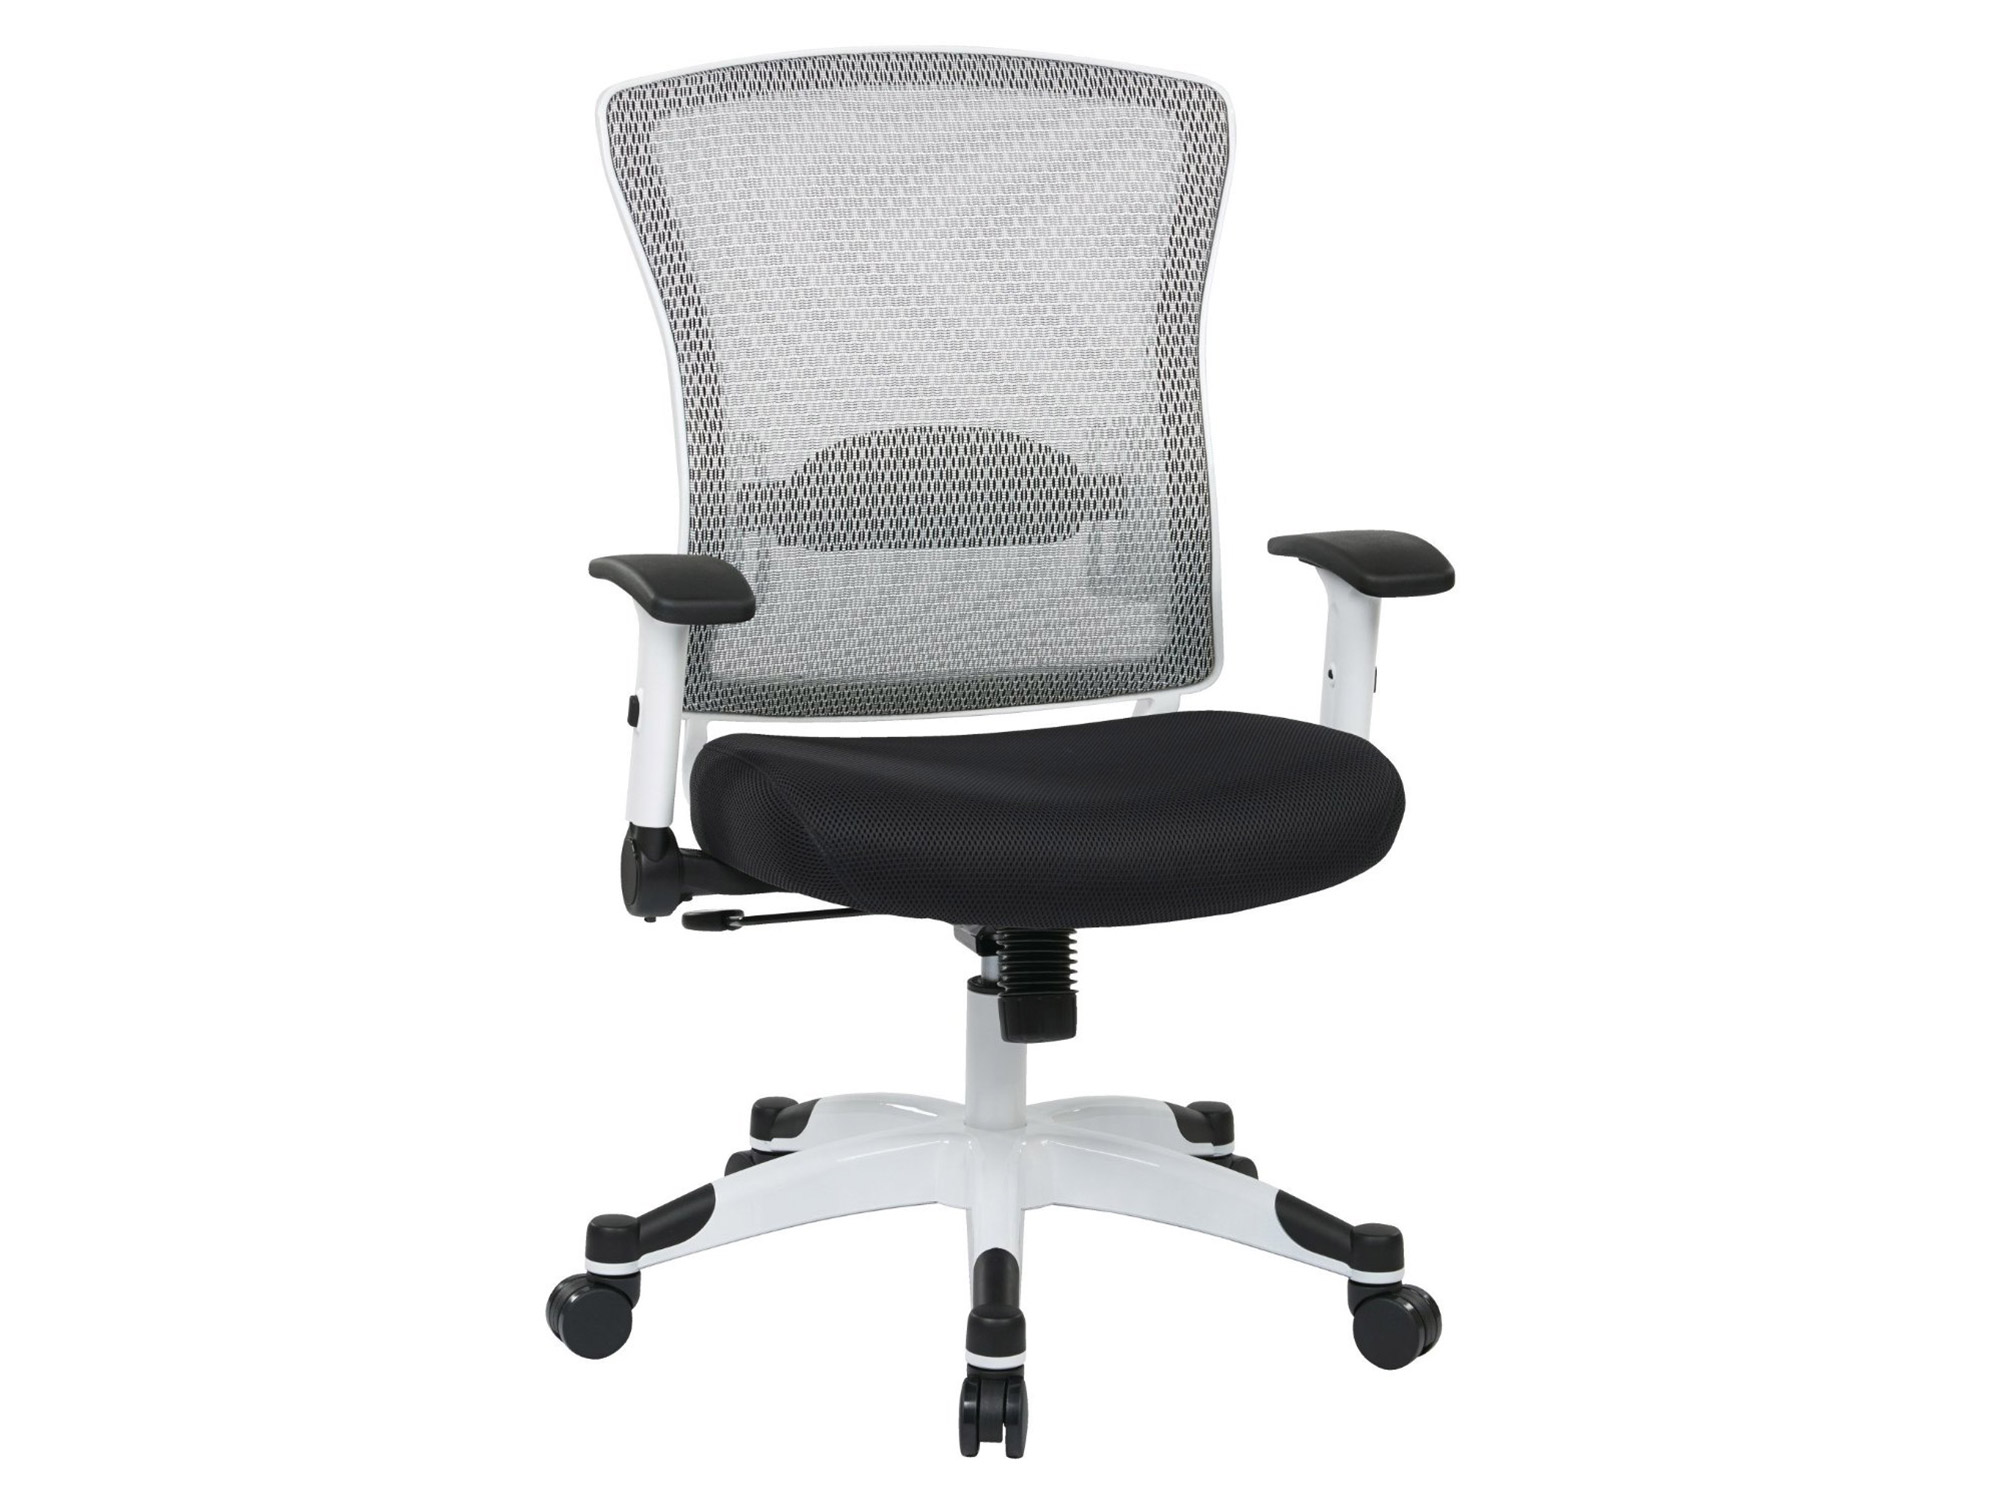 Green fice Chair fice Task Chairs Chairs For fice